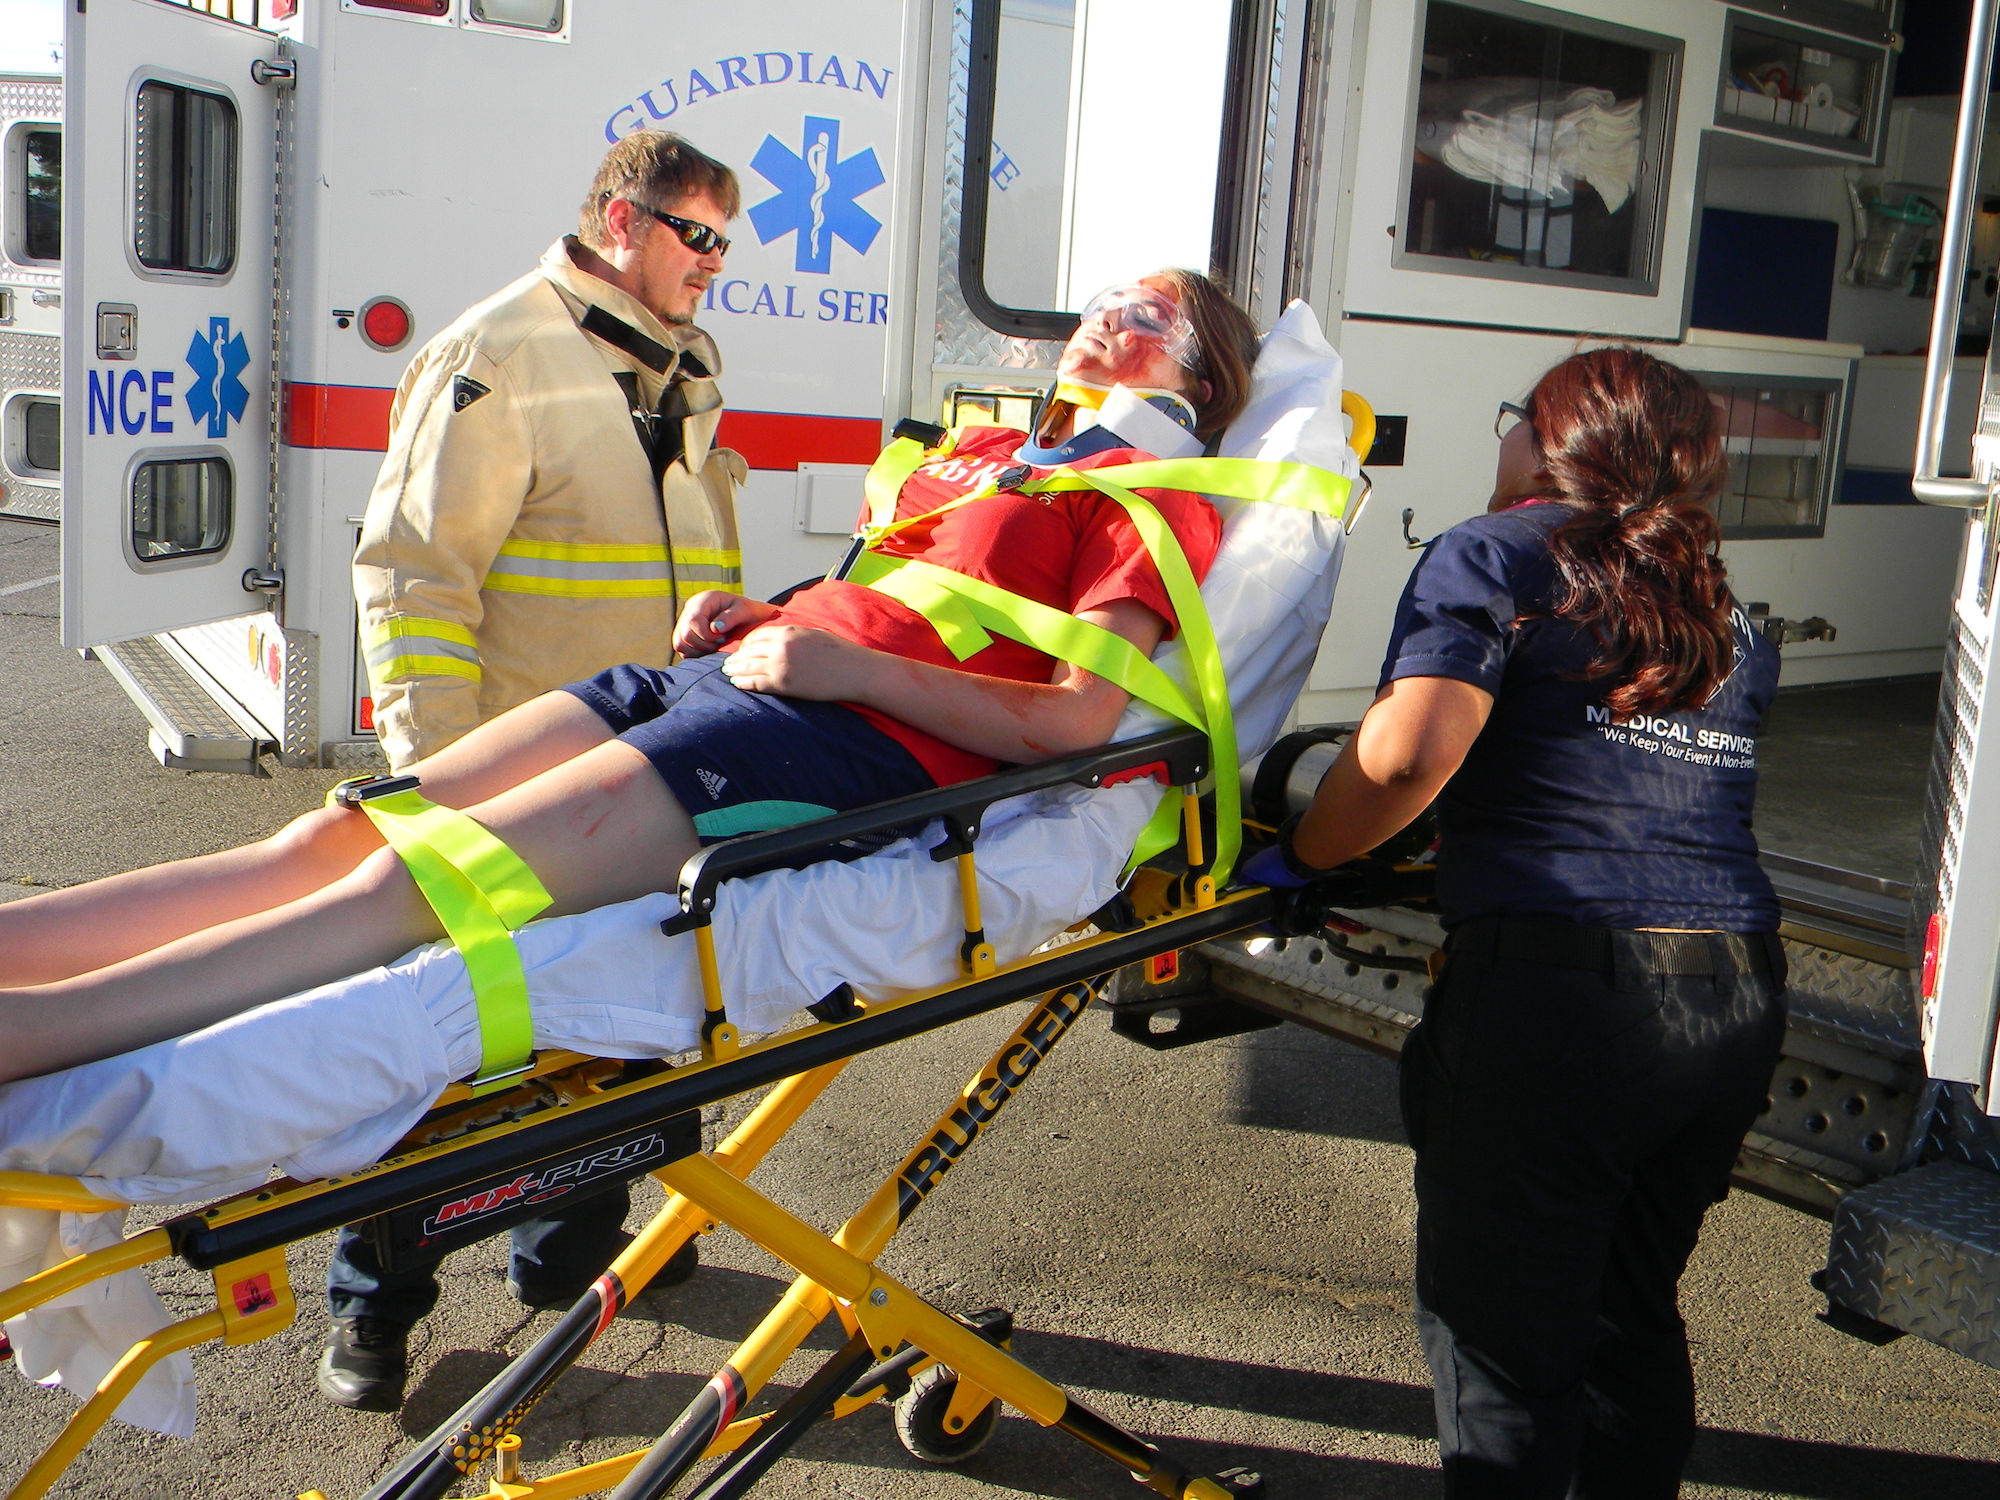 EMT Refresher – February 1 to March 1, 2019